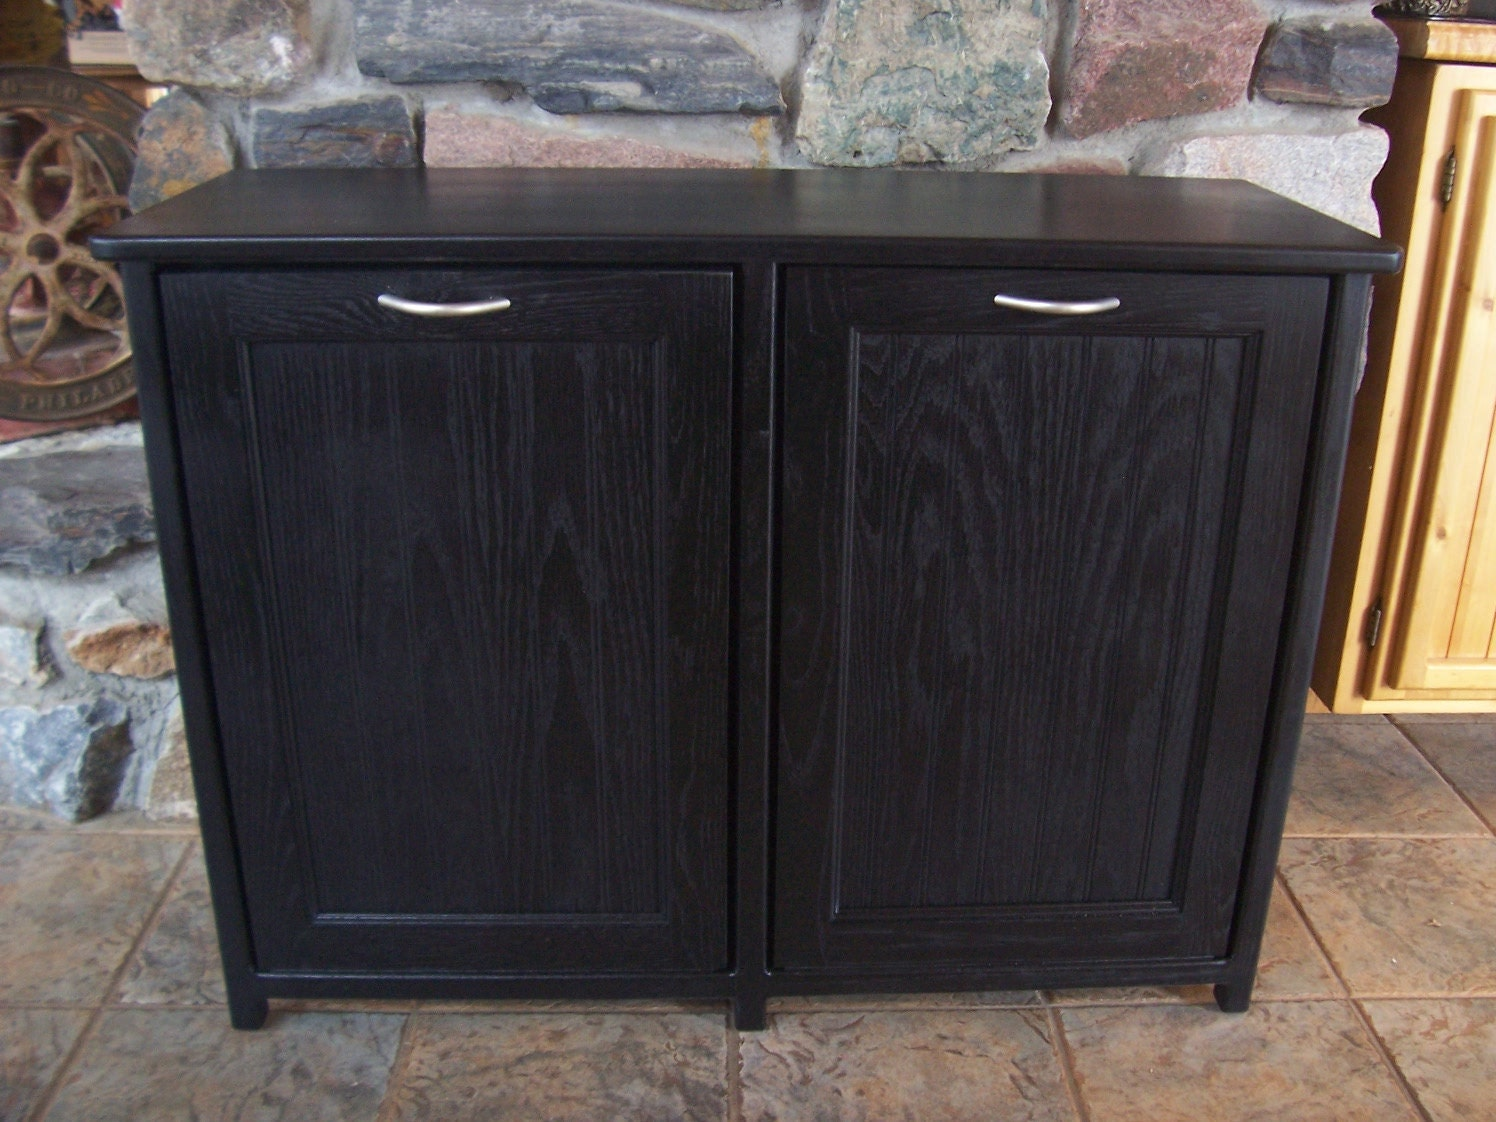 new black painted wood double trash bin cabinet by woodupnorth. Black Bedroom Furniture Sets. Home Design Ideas